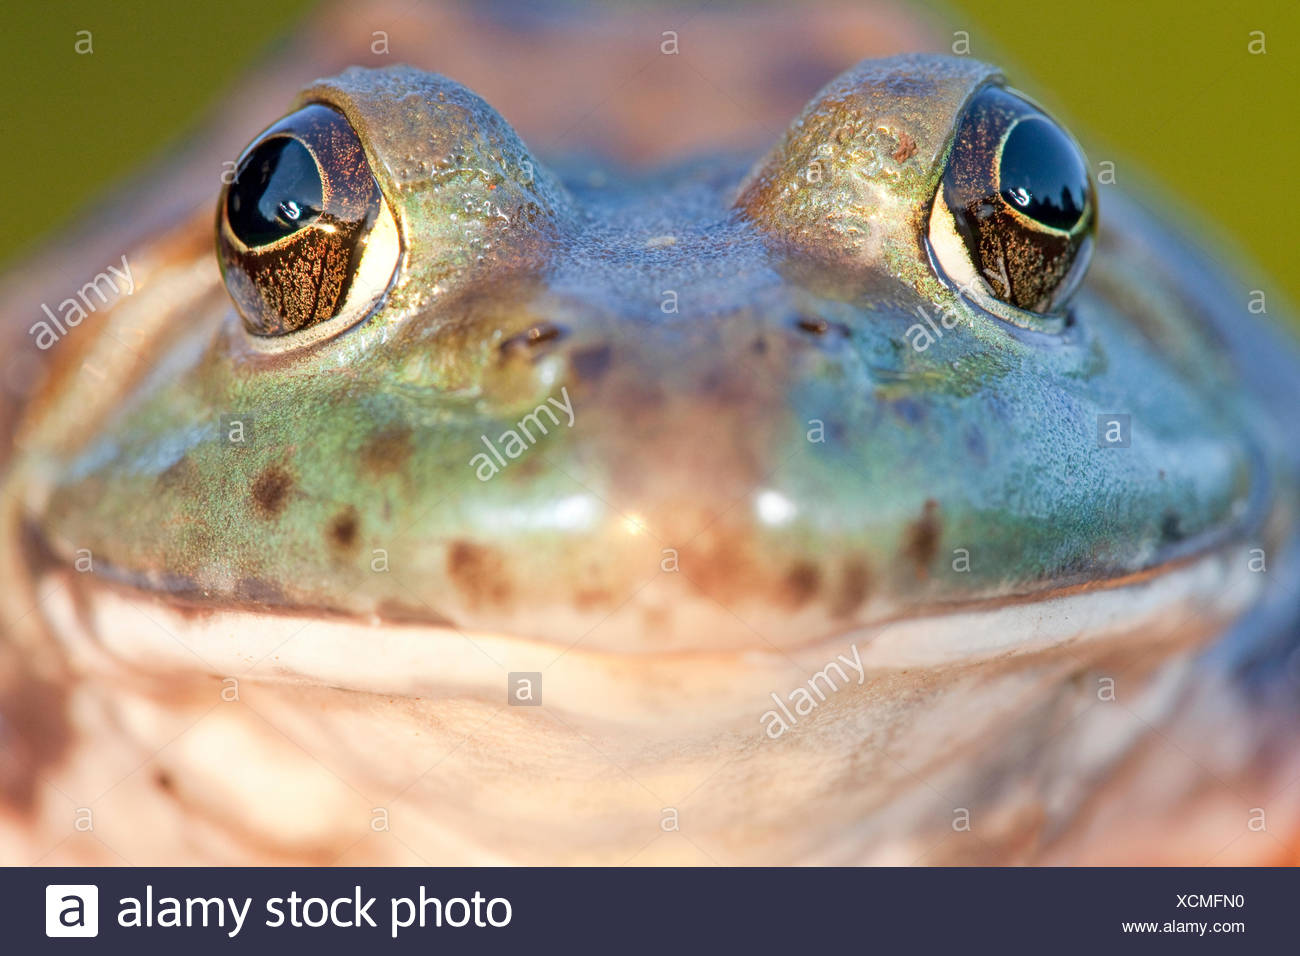 frontal portret of a North American Bullfrog - Stock Image